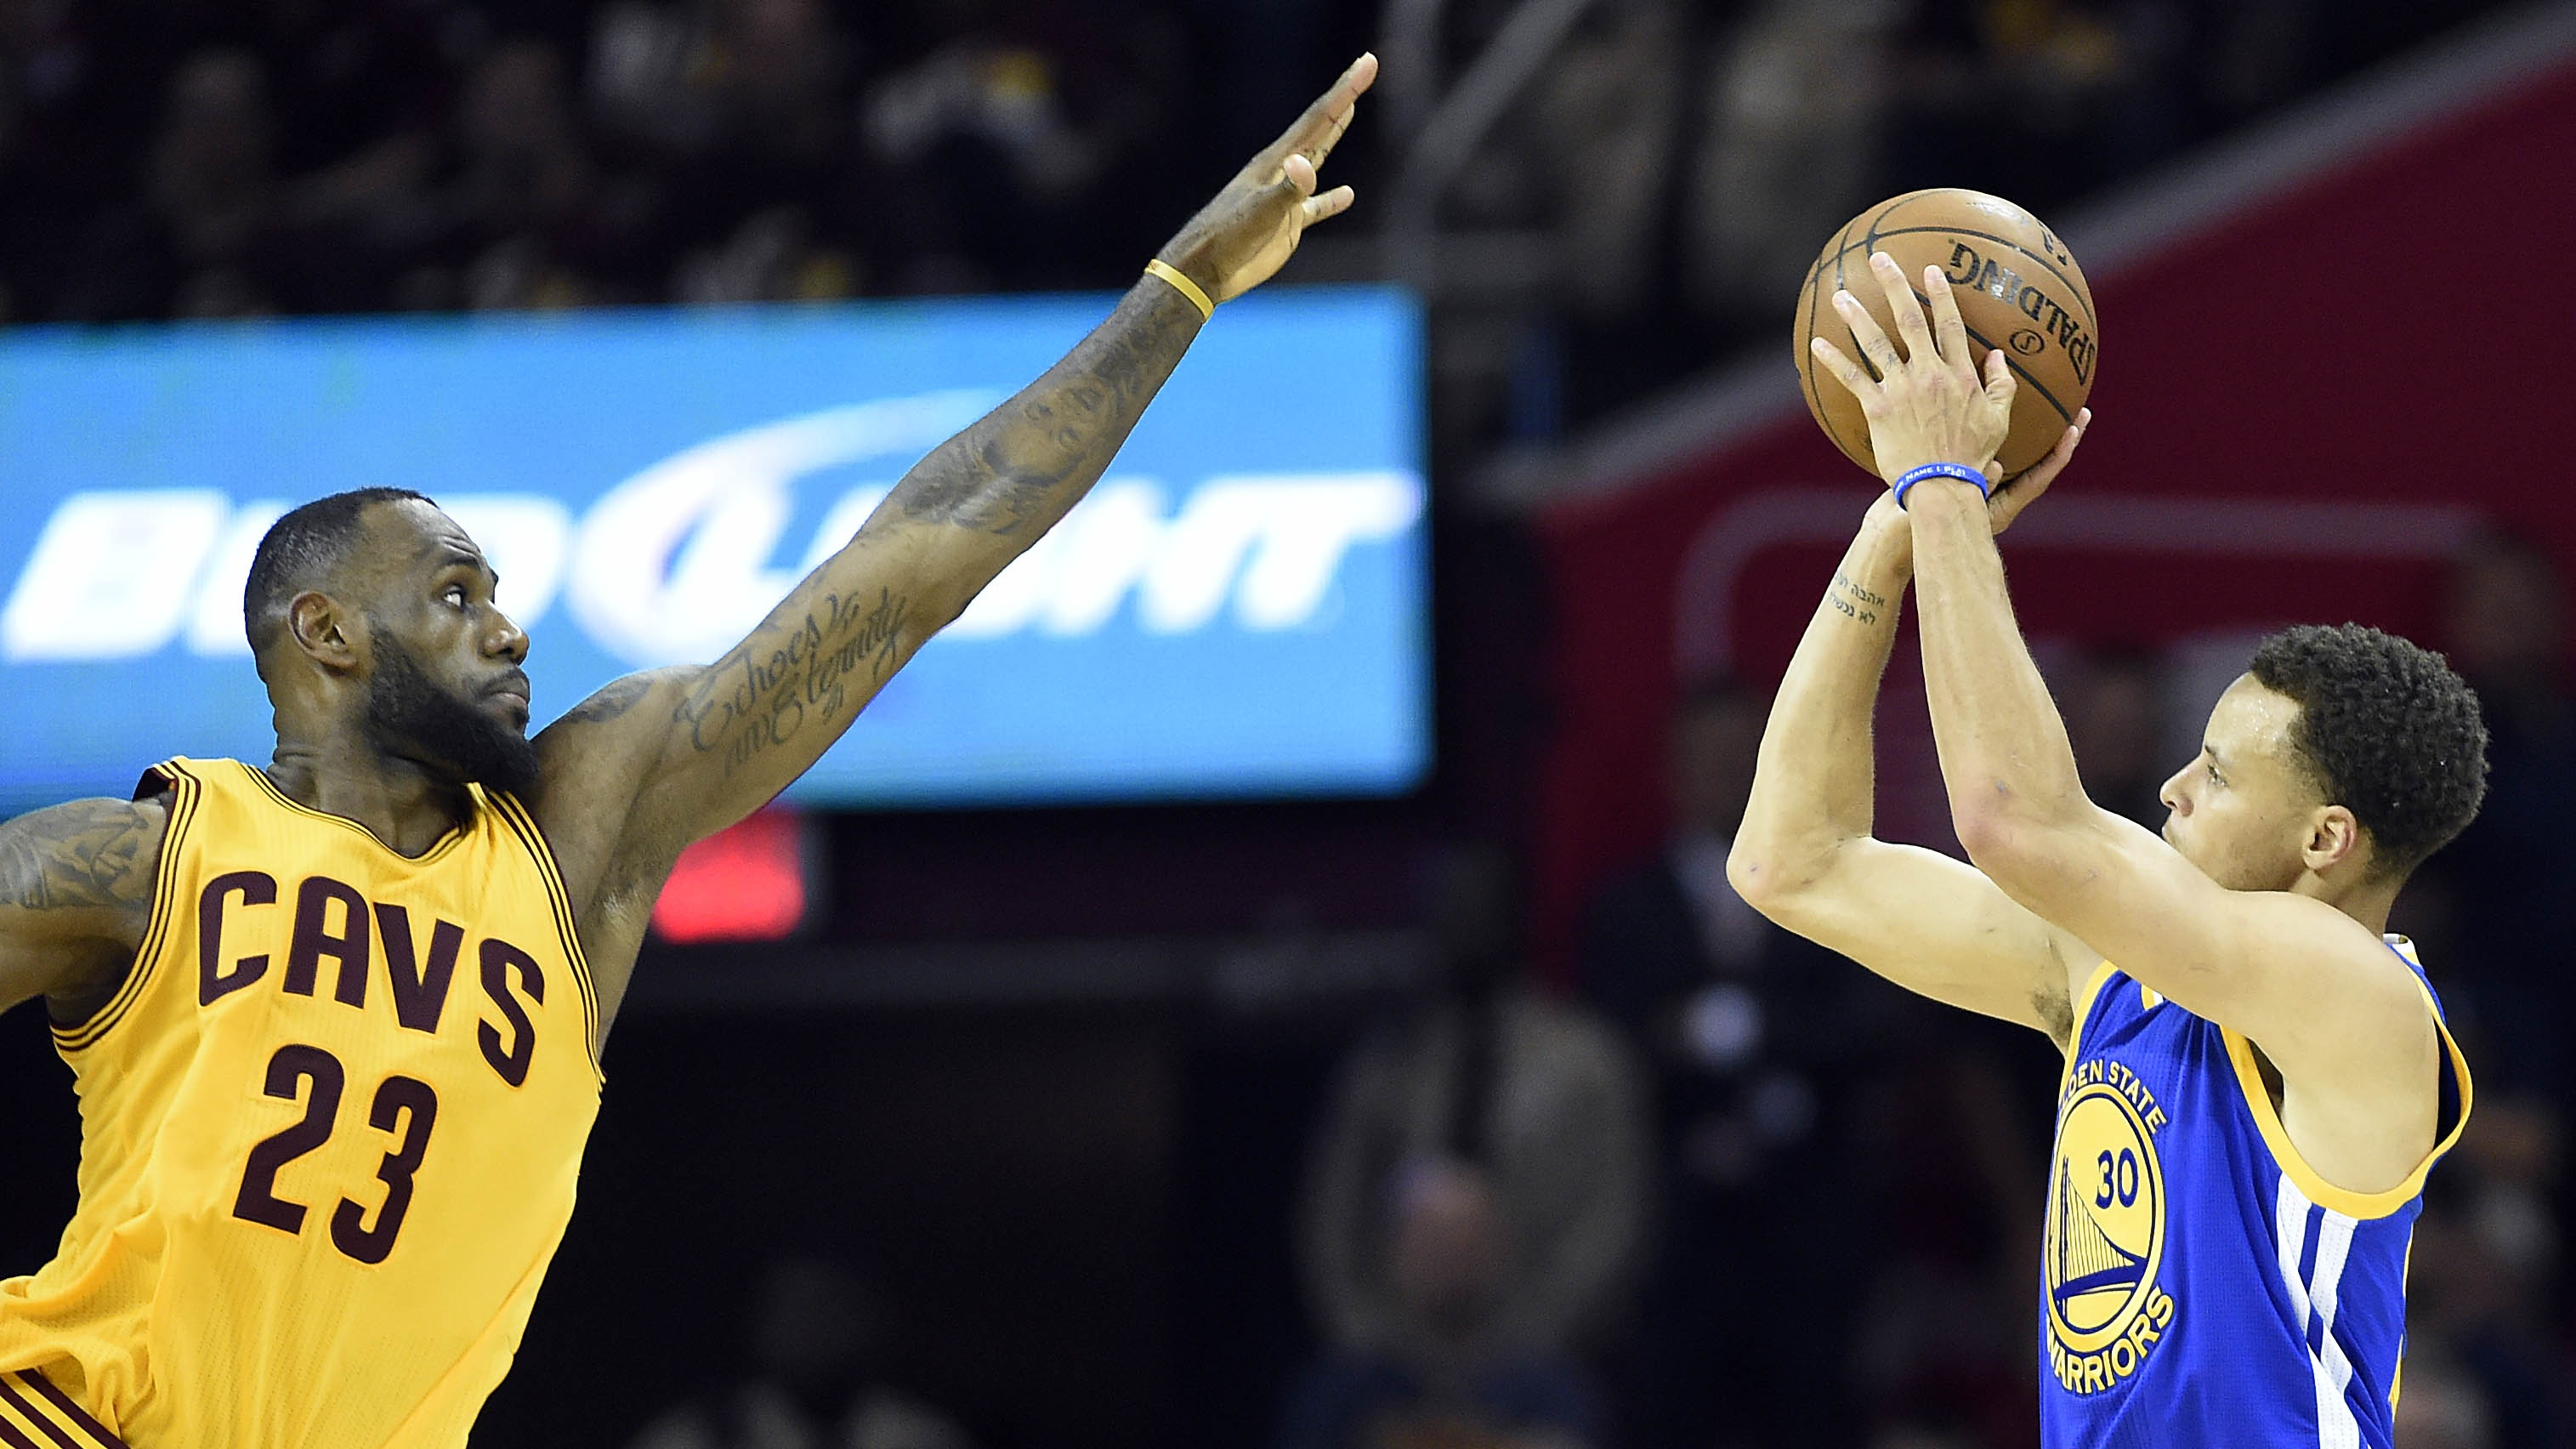 Jun 9, 2015; Cleveland, OH, USA; Golden State Warriors guard Stephen Curry (30) shoots the ball over Cleveland Cavaliers forward LeBron James (23) during the fourth quarter in game three of the NBA Finals at Quicken Loans Arena.